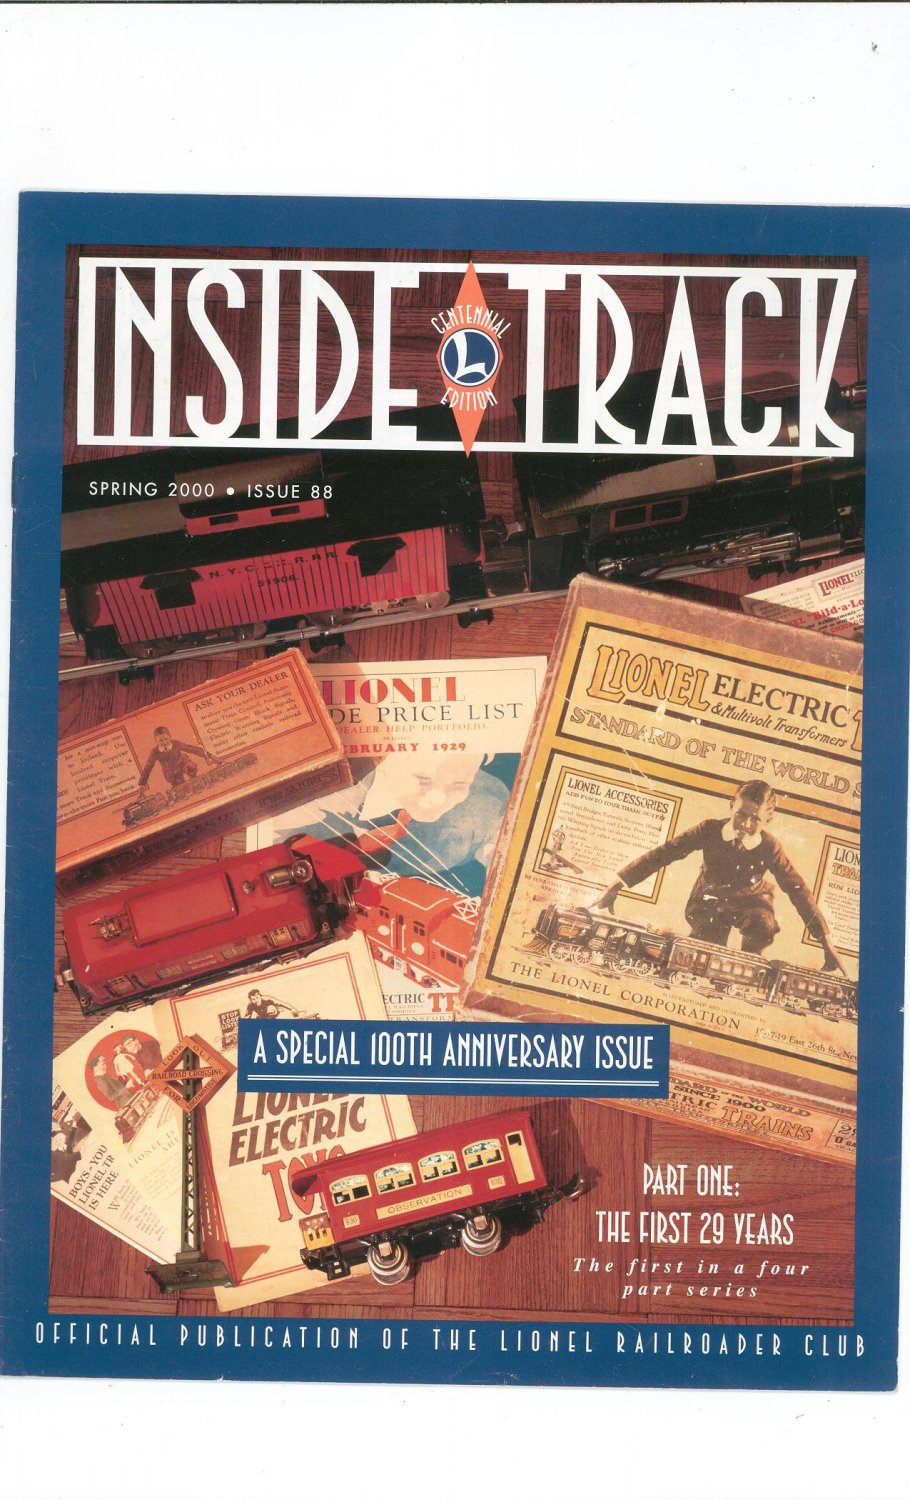 Lionel Railroader Club Inside Track Spring 2000 Issue 88 Not PDF Train Free Shipping Offer